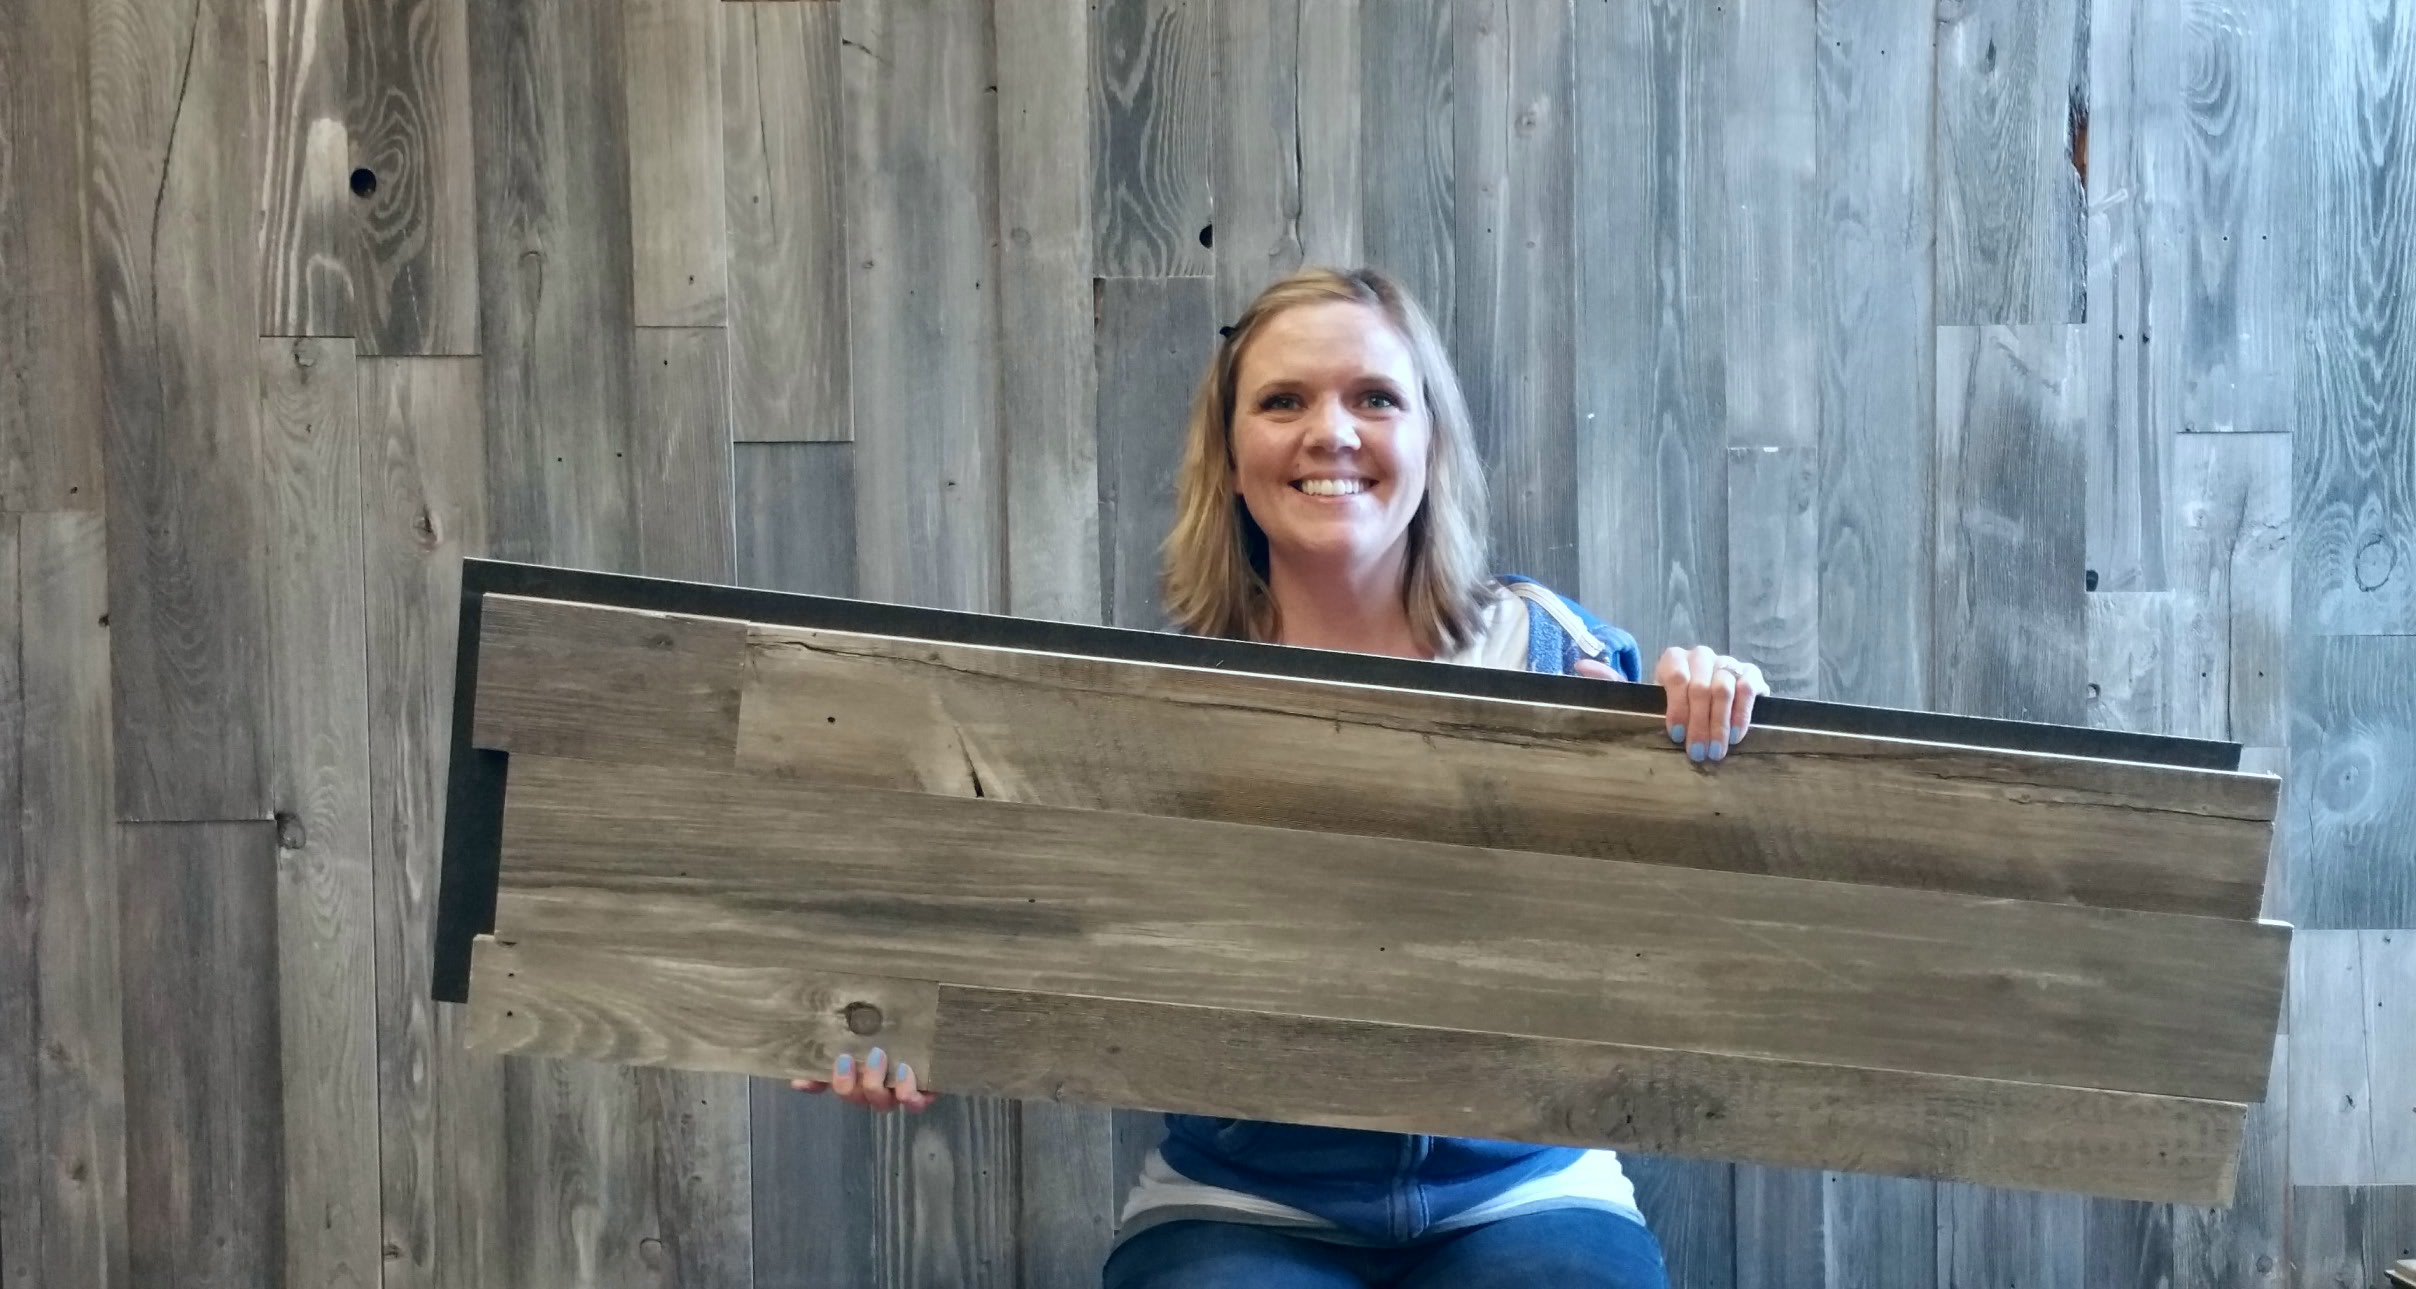 Introducing our new barnwood grey prefab wall panels sustainable lumber company